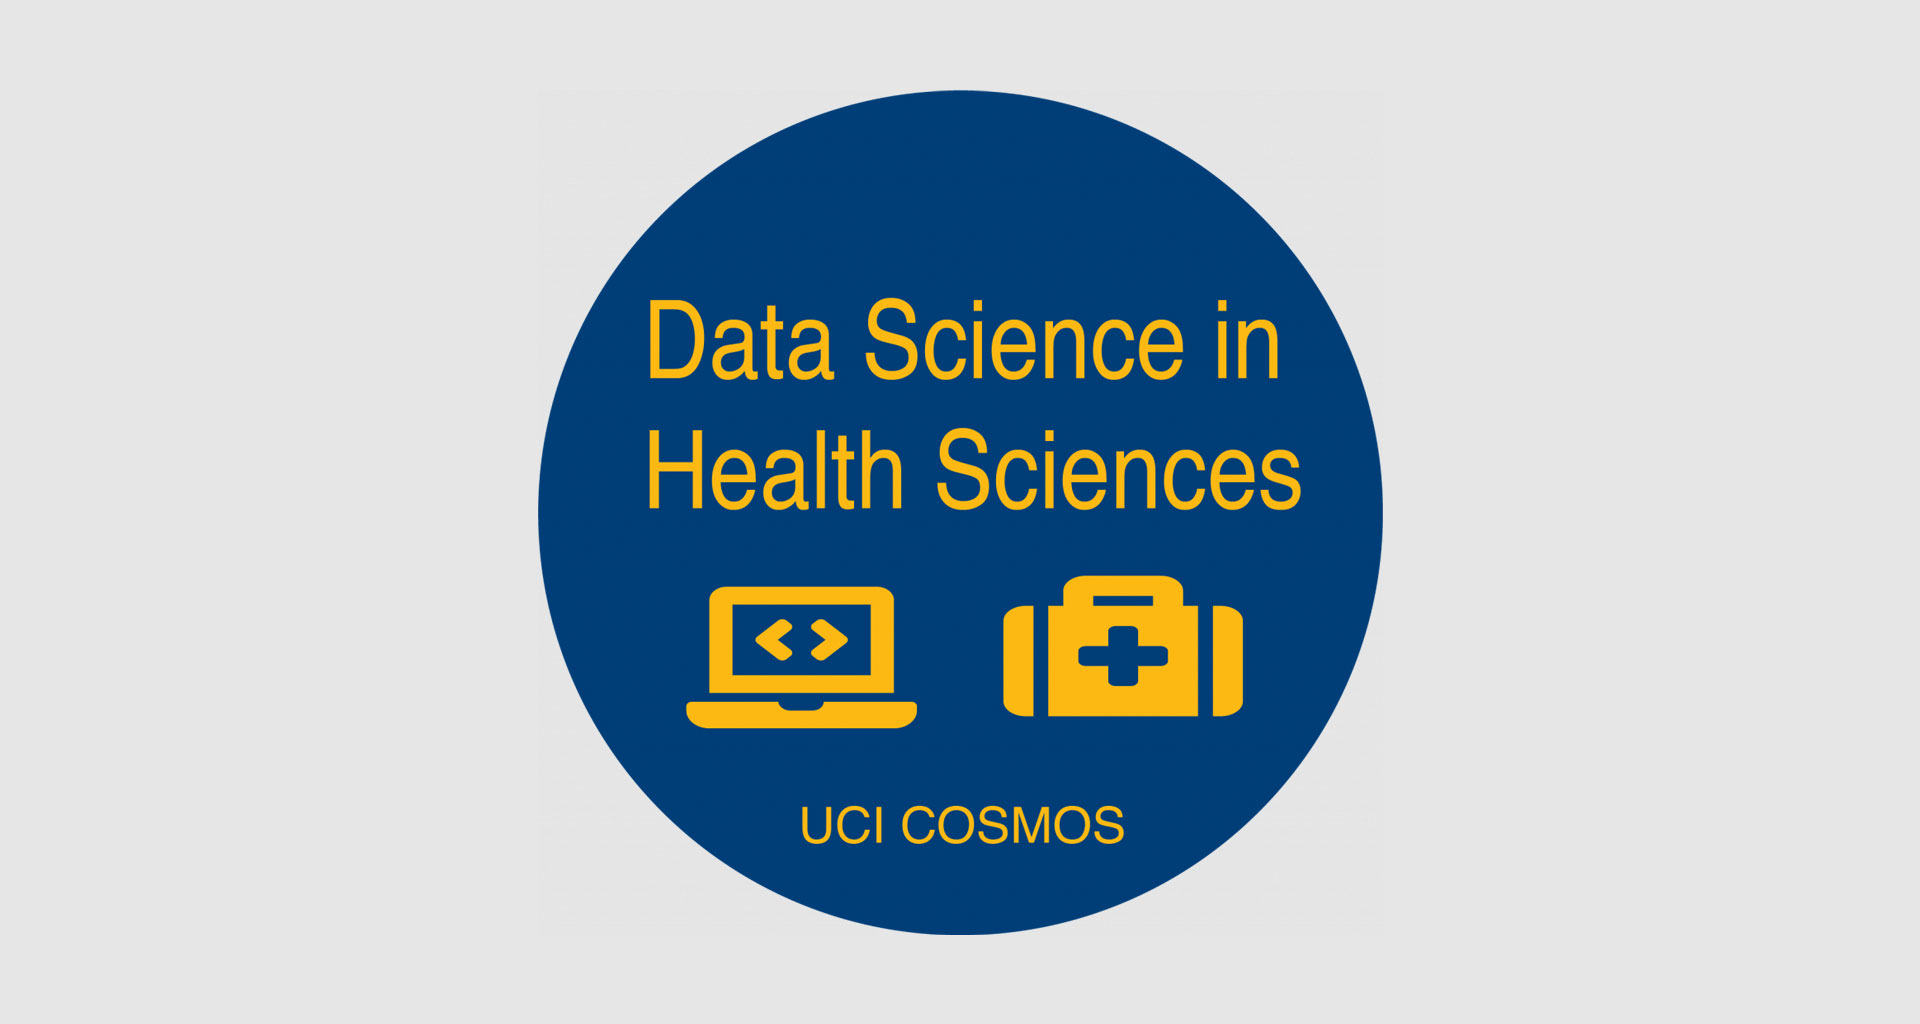 COSMOS Cluster on Data Science Applications in Health Sciences